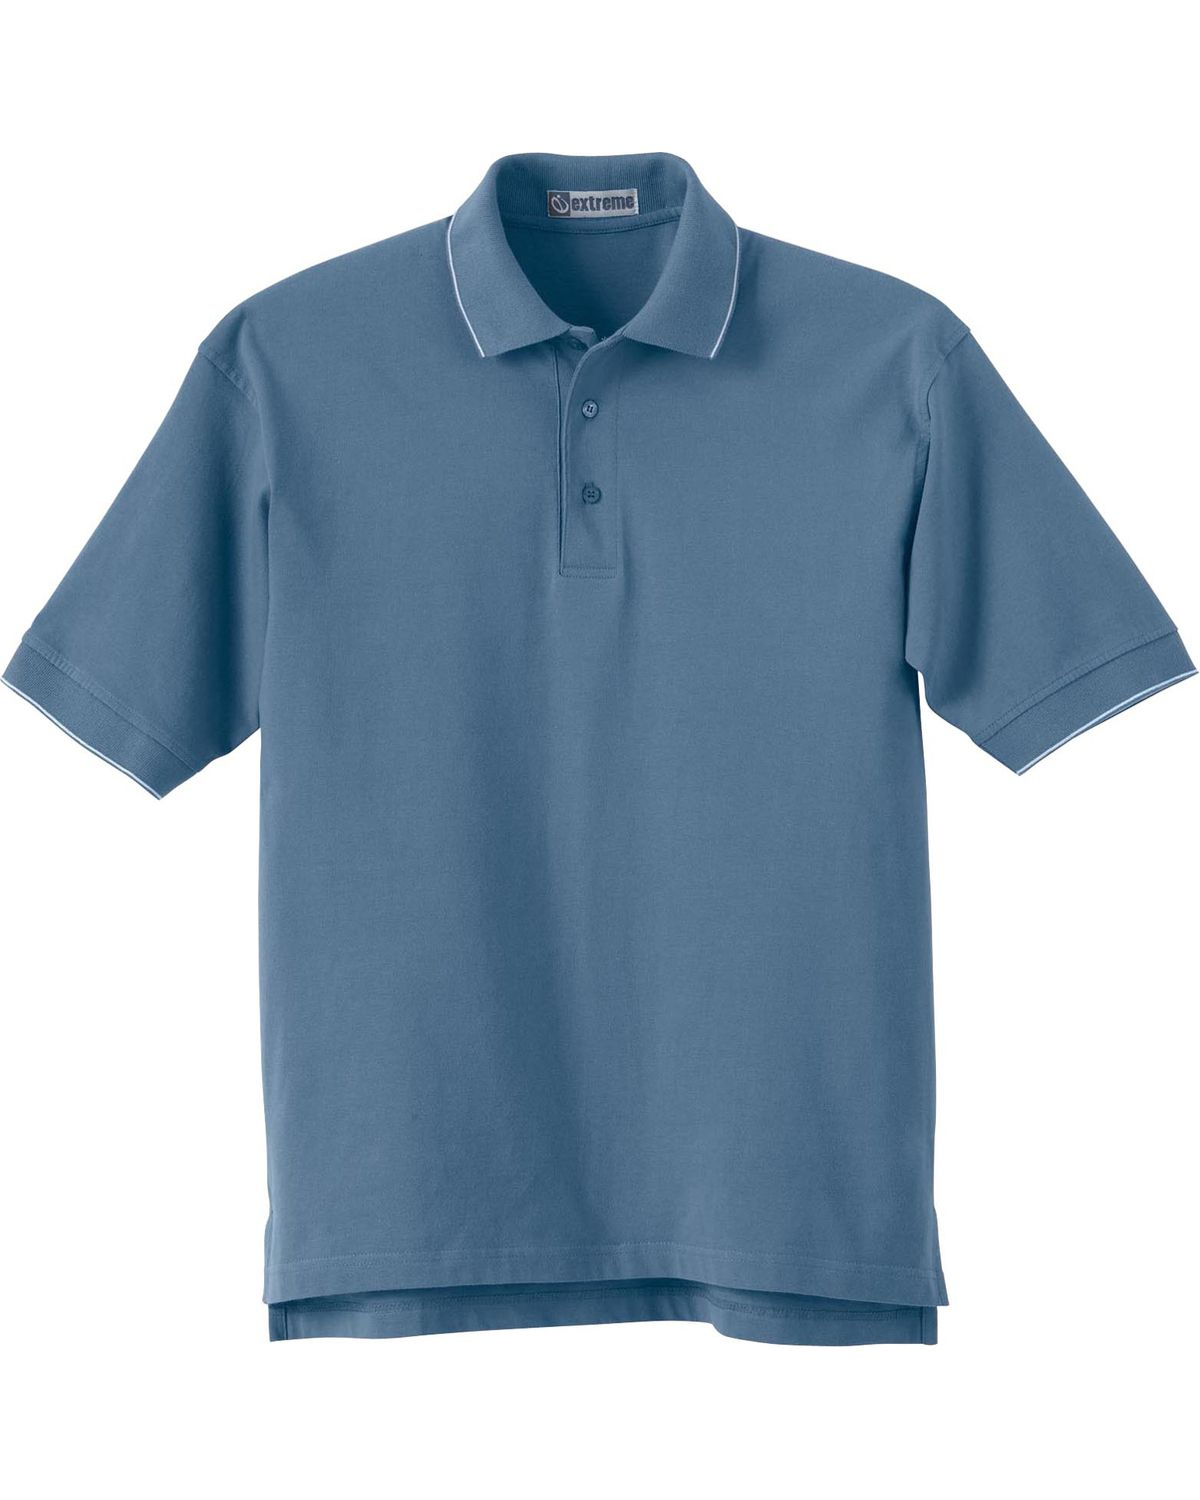 Extreme Mens Cotton Jersey Short Sleeve Polo Shirt 85032